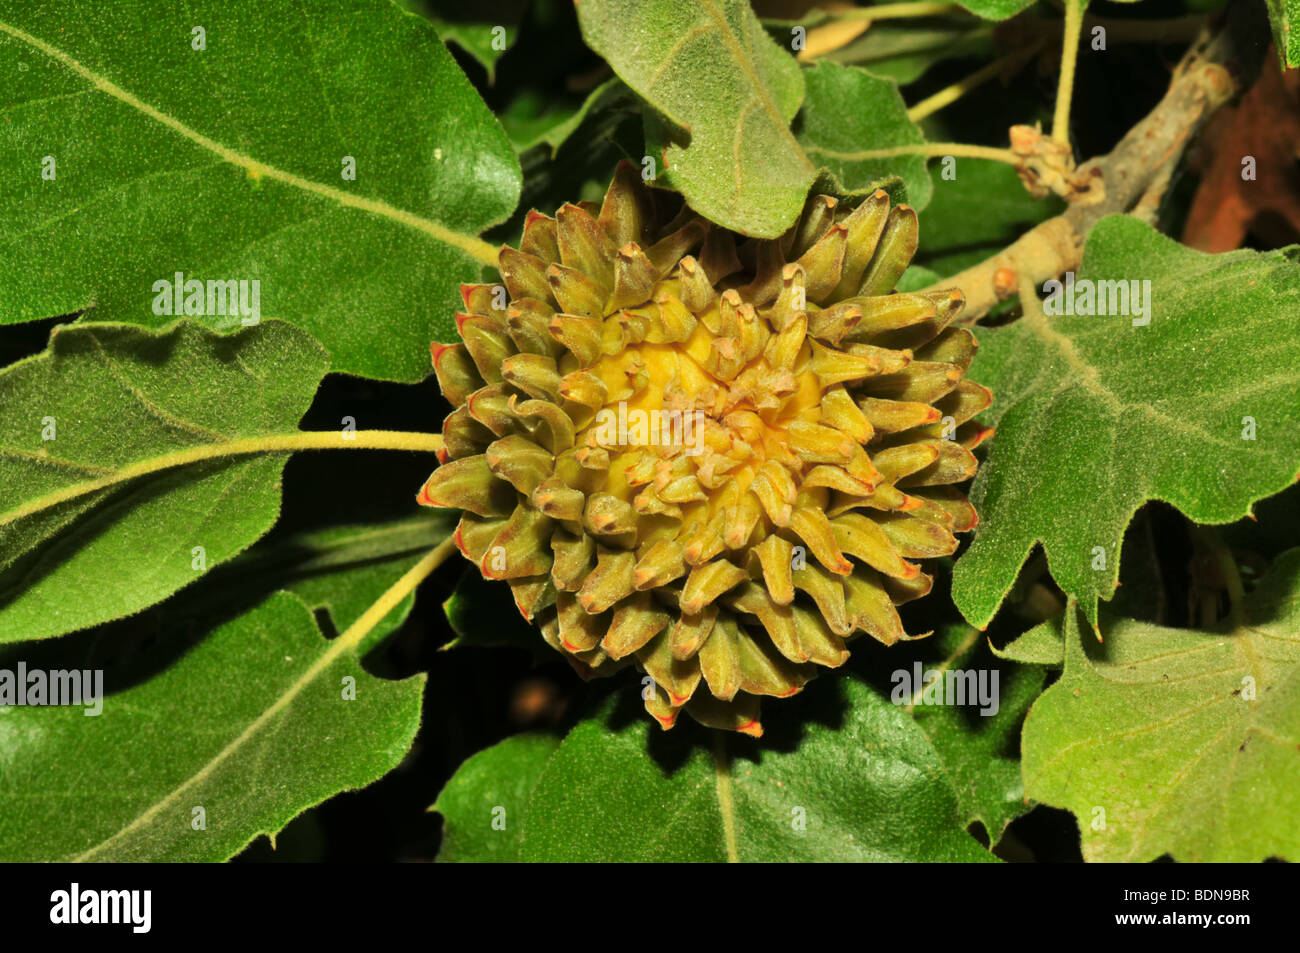 image of oak leaves and acorn quercus macrolepis stock photo